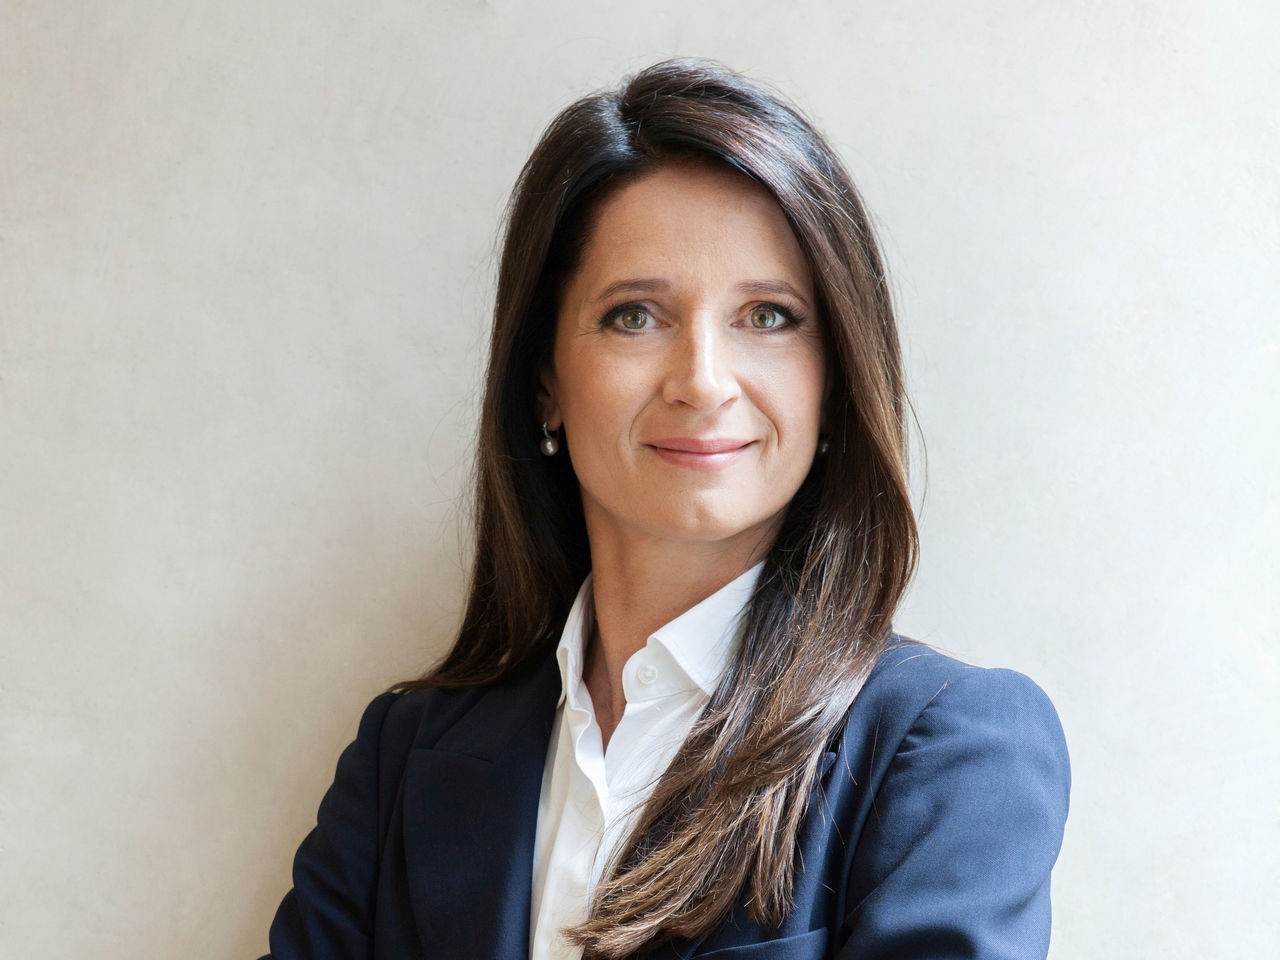 Nomination of Marianne Heiß as a member of the ||Supervisory Board of AUDI AG